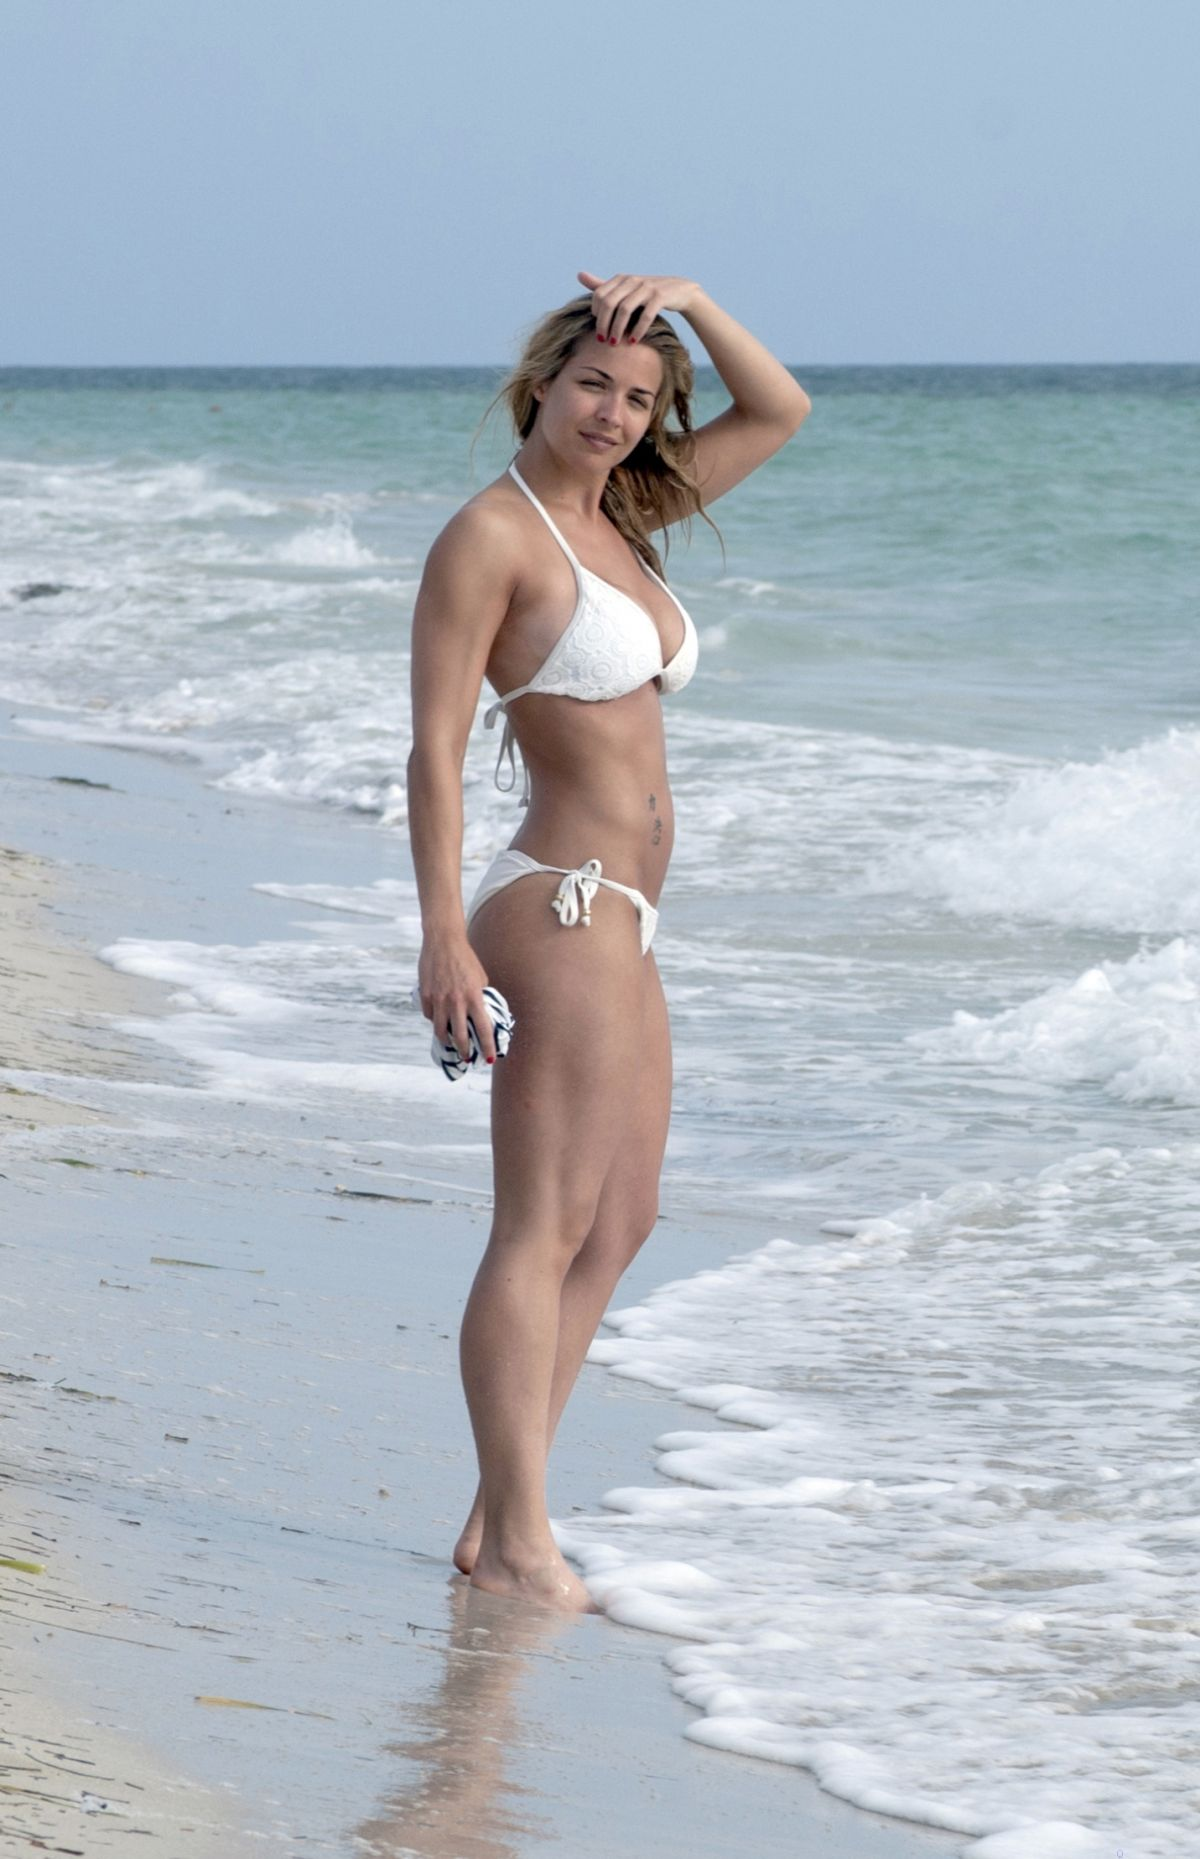 gemma atkinson image 40 - photo #18